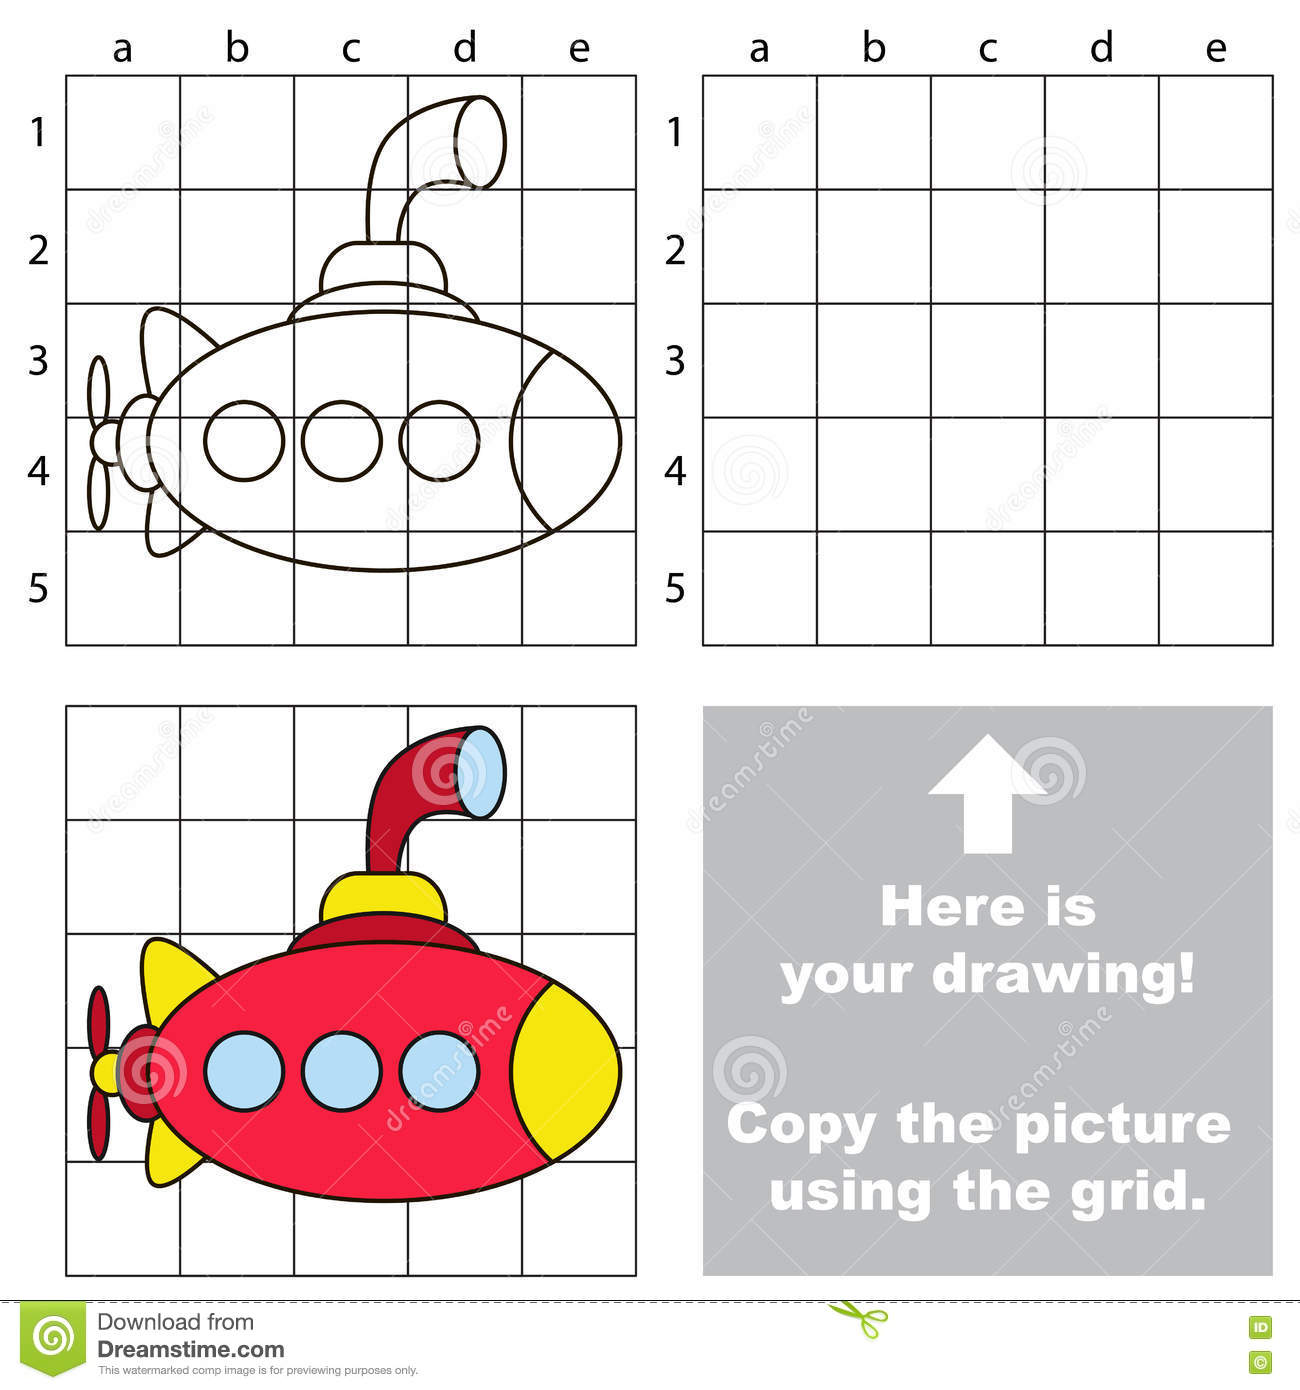 Drawing Lines Using Html : Copy the image using grid simple educational kid game